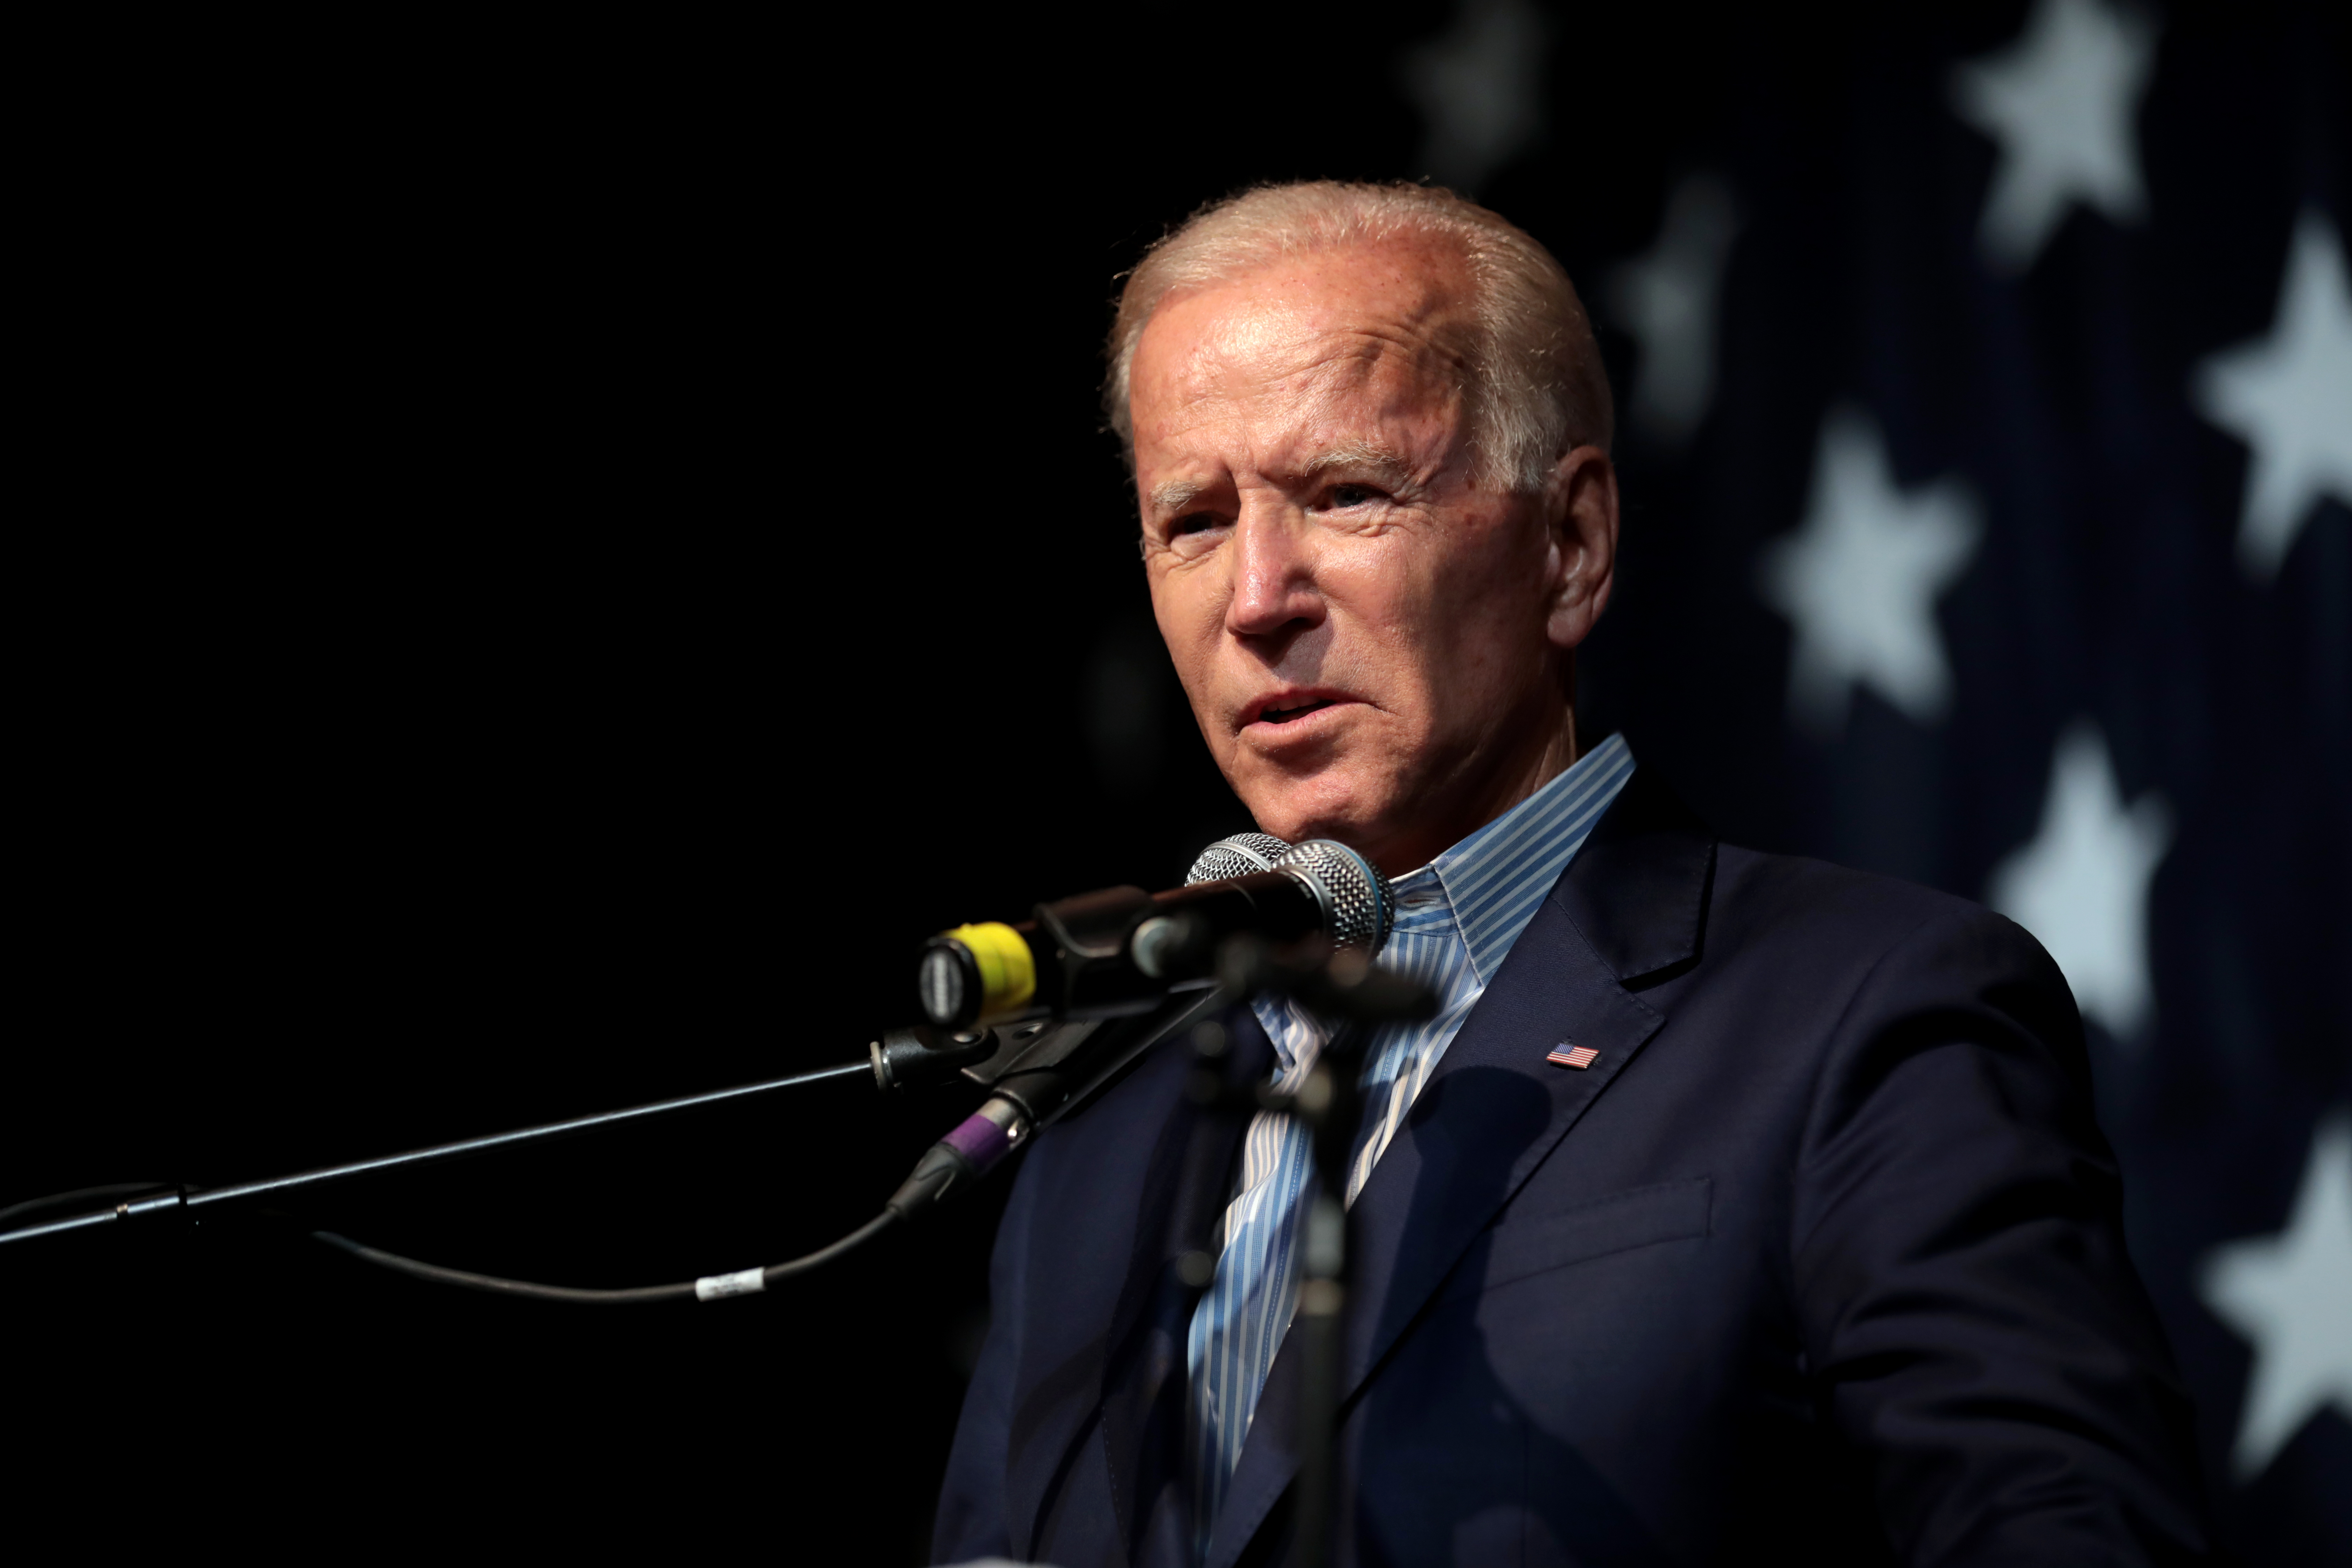 Joe Biden on Tara Reade allegation: 'Women should be believed,' but 'this never happened